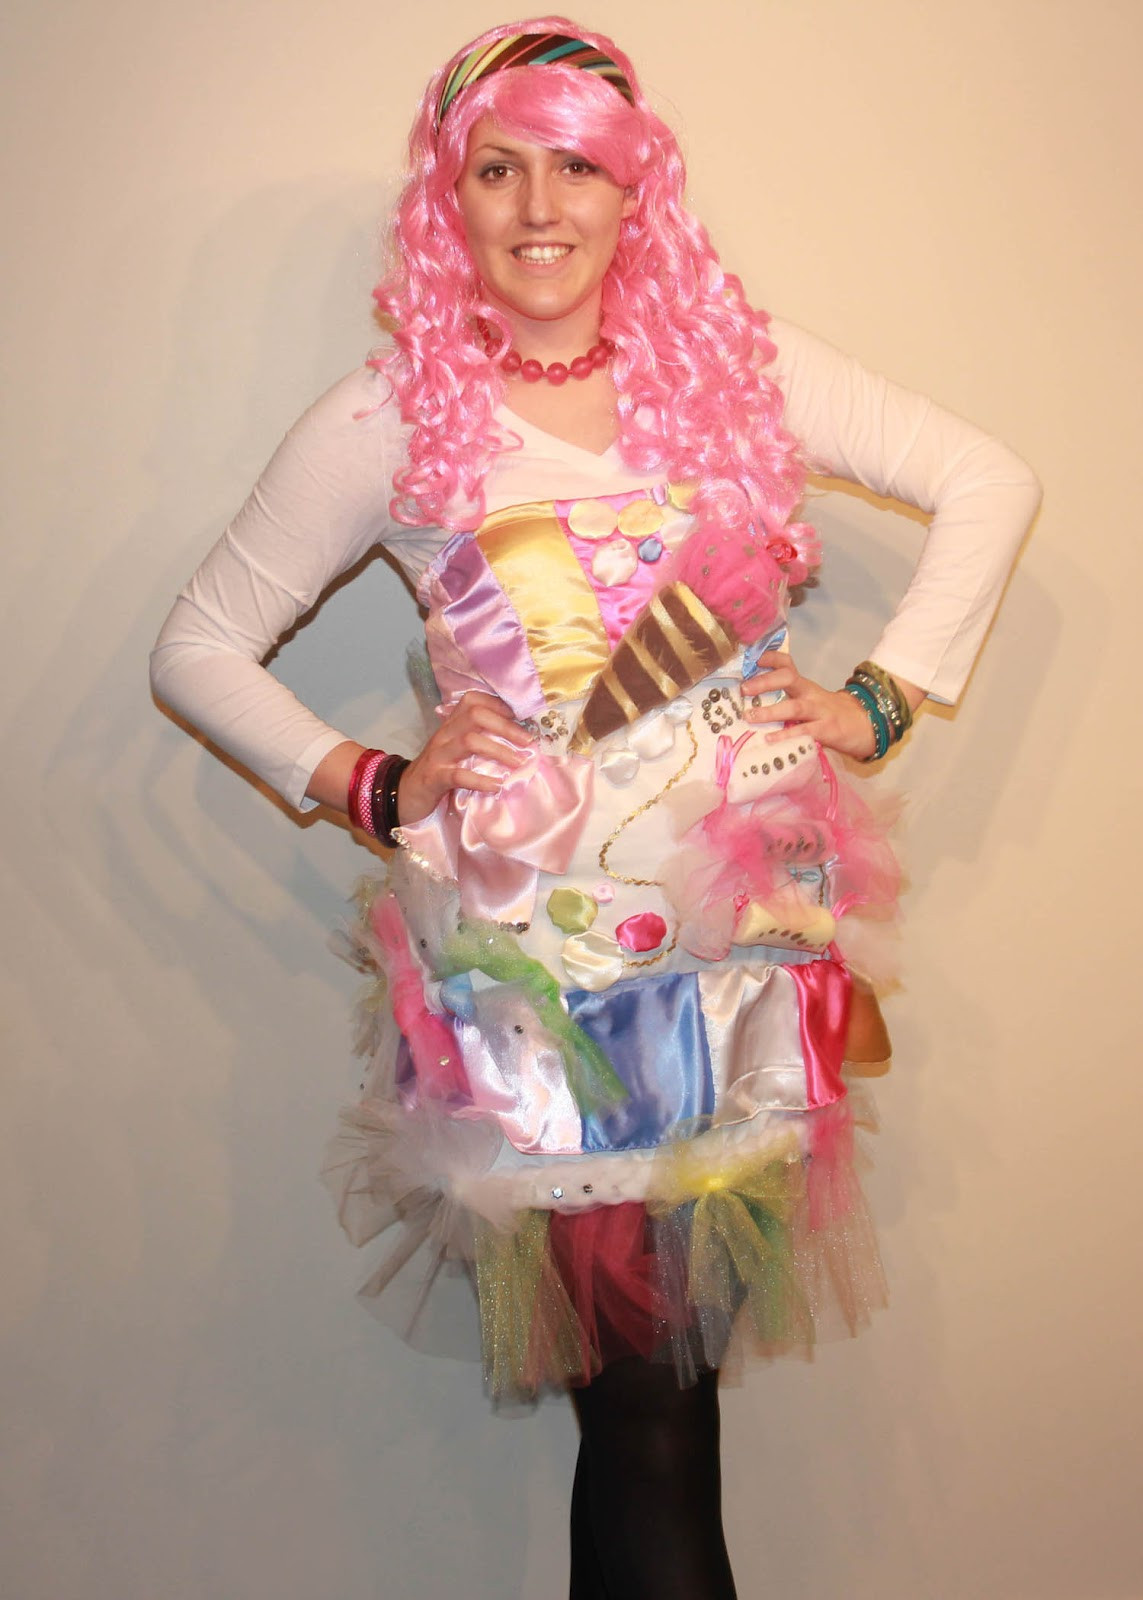 DIY Candy Costume  SunLight and Sequins DIY Katy Perry Inspired Candy Land